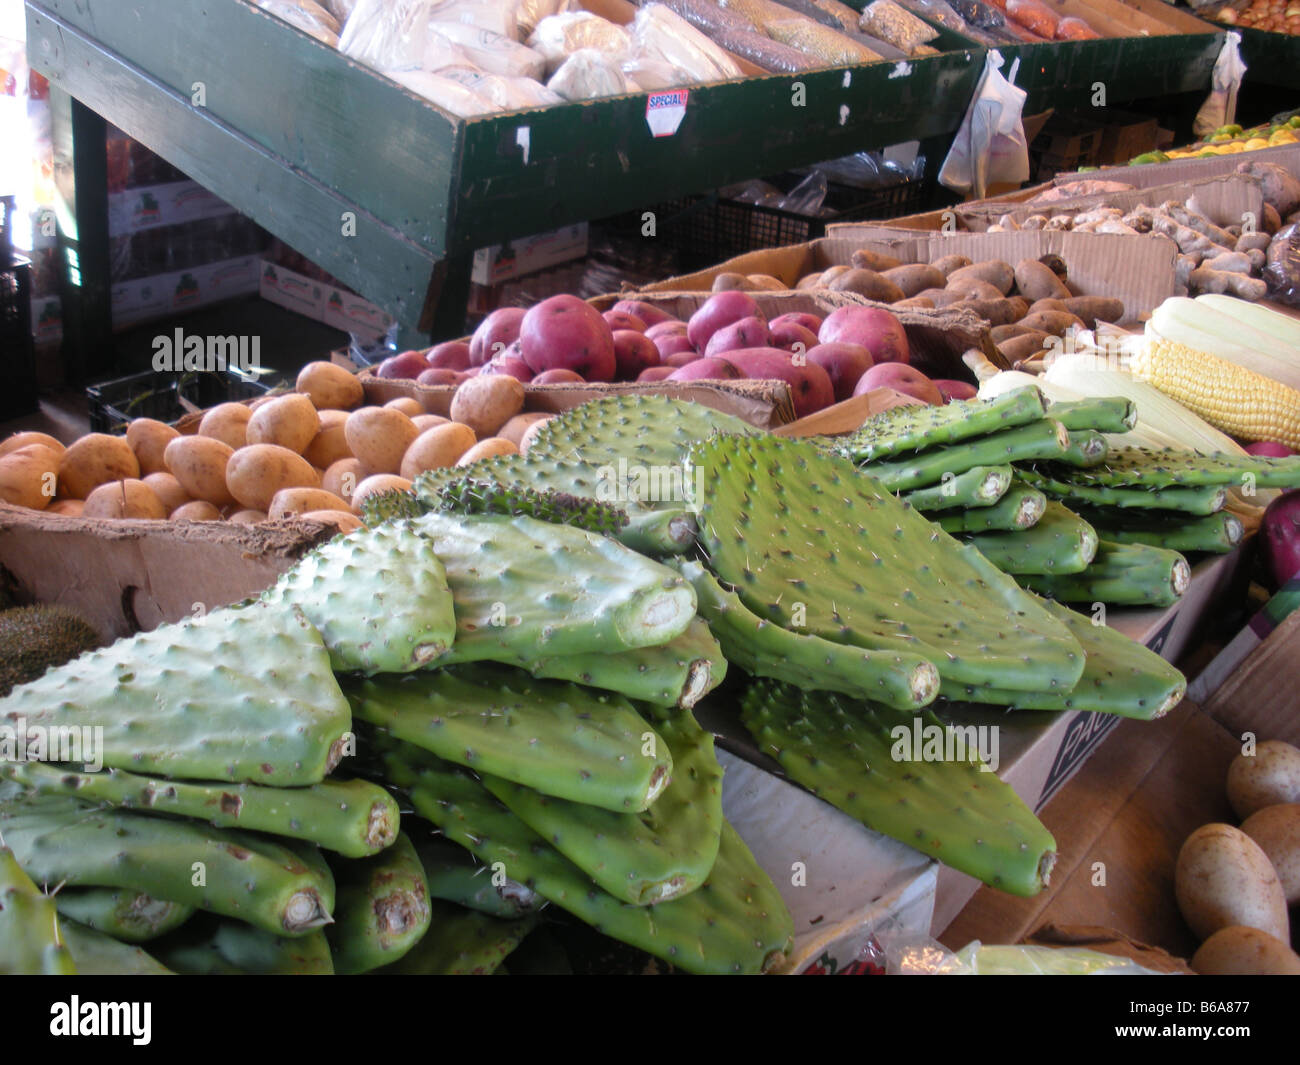 Edible cactus leaves for sale at a farmers market in Texas - Stock Image